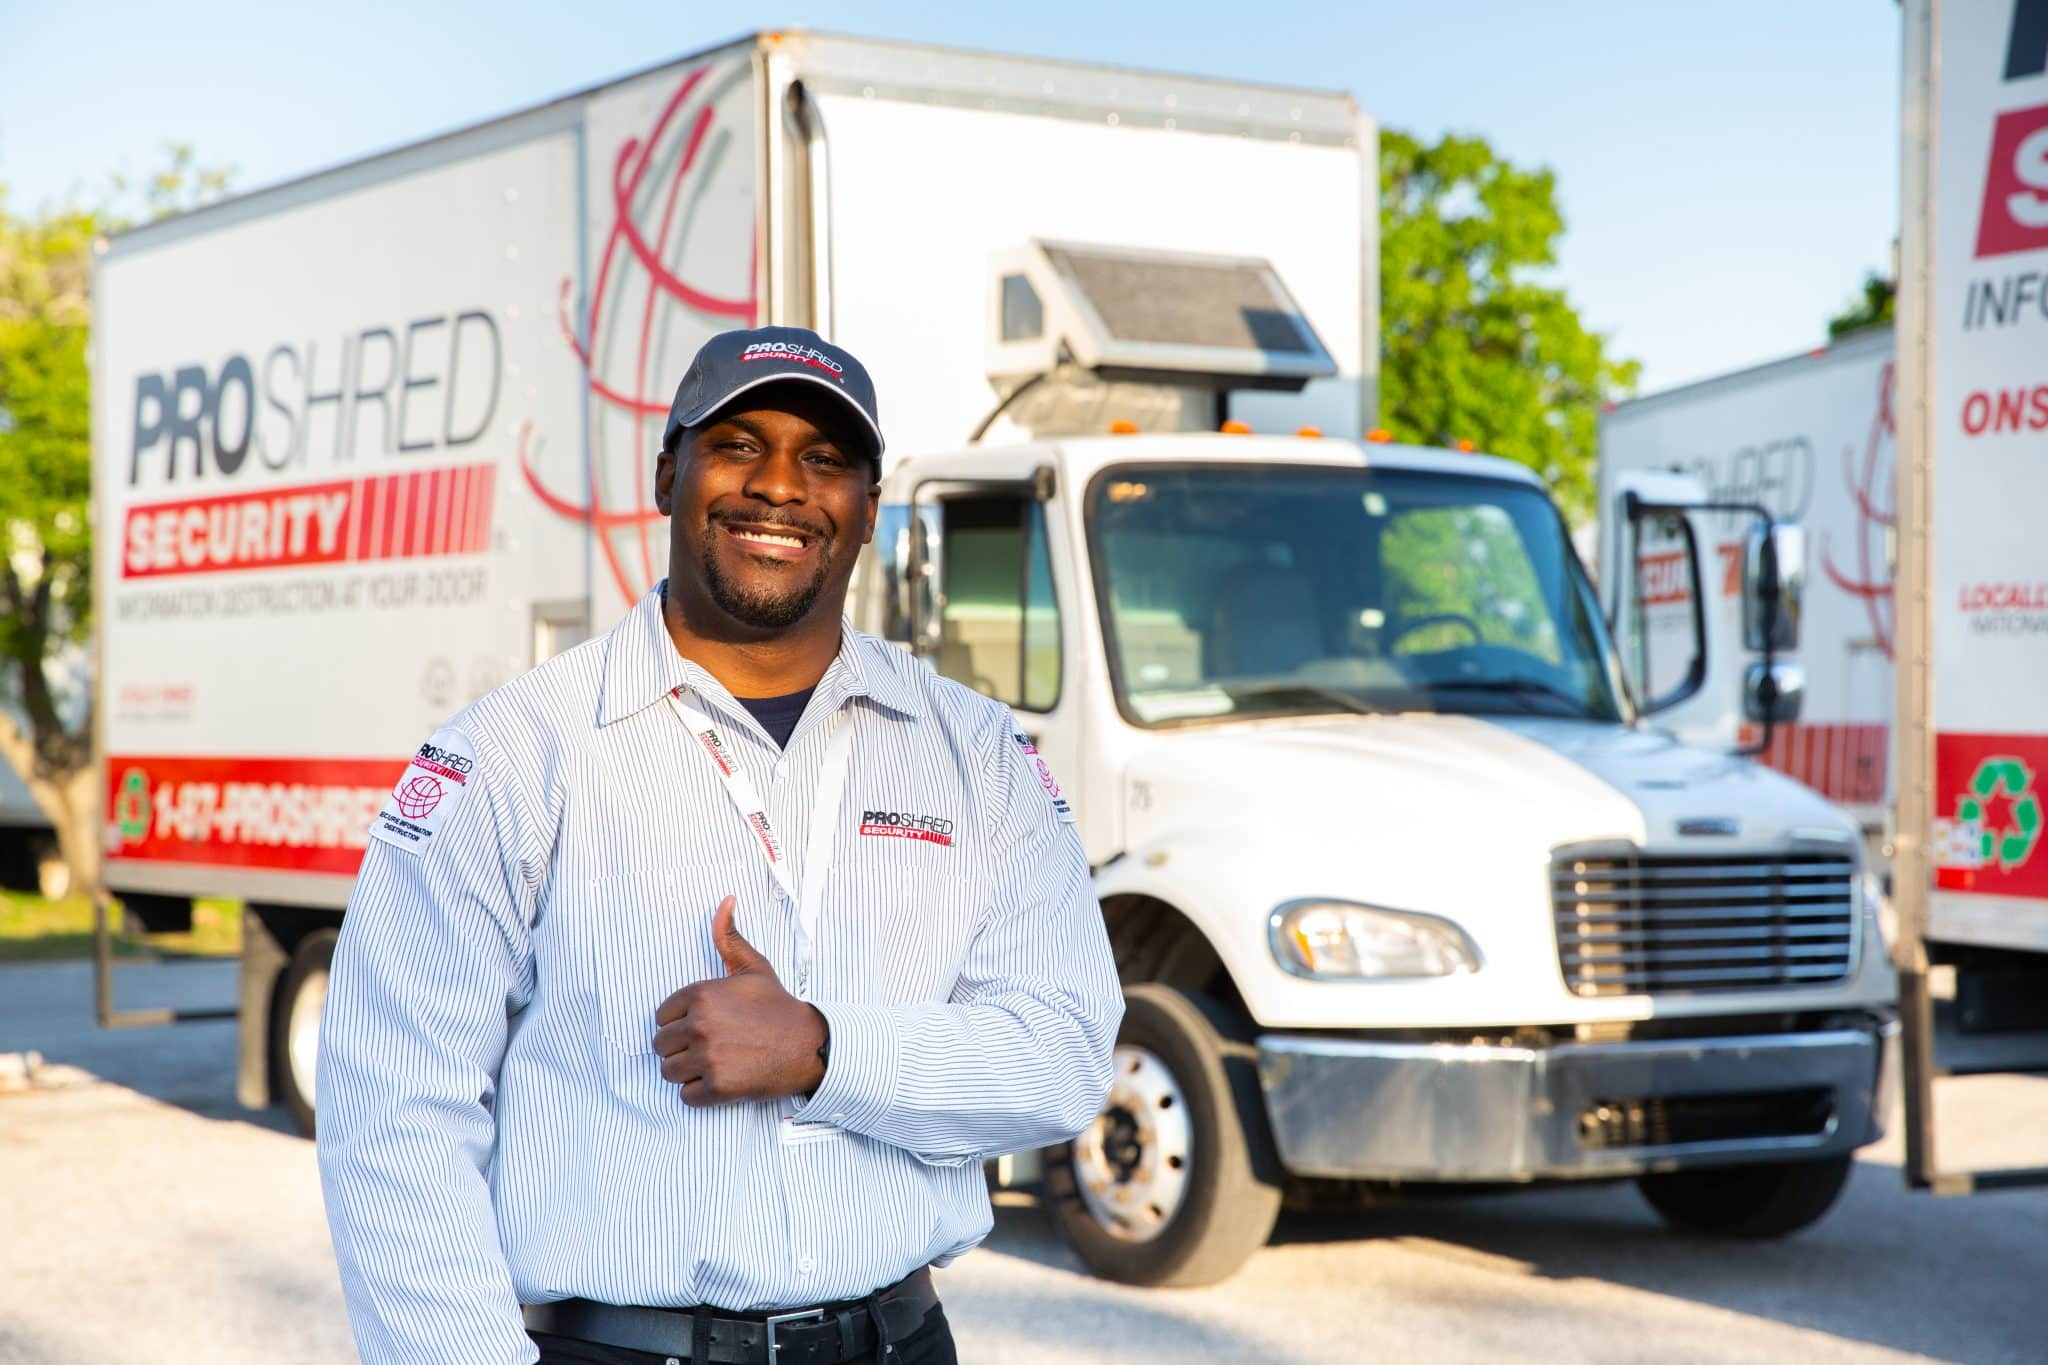 PROSHRED Security employee giving a thumbs up and smiling in front of a shredding truck.